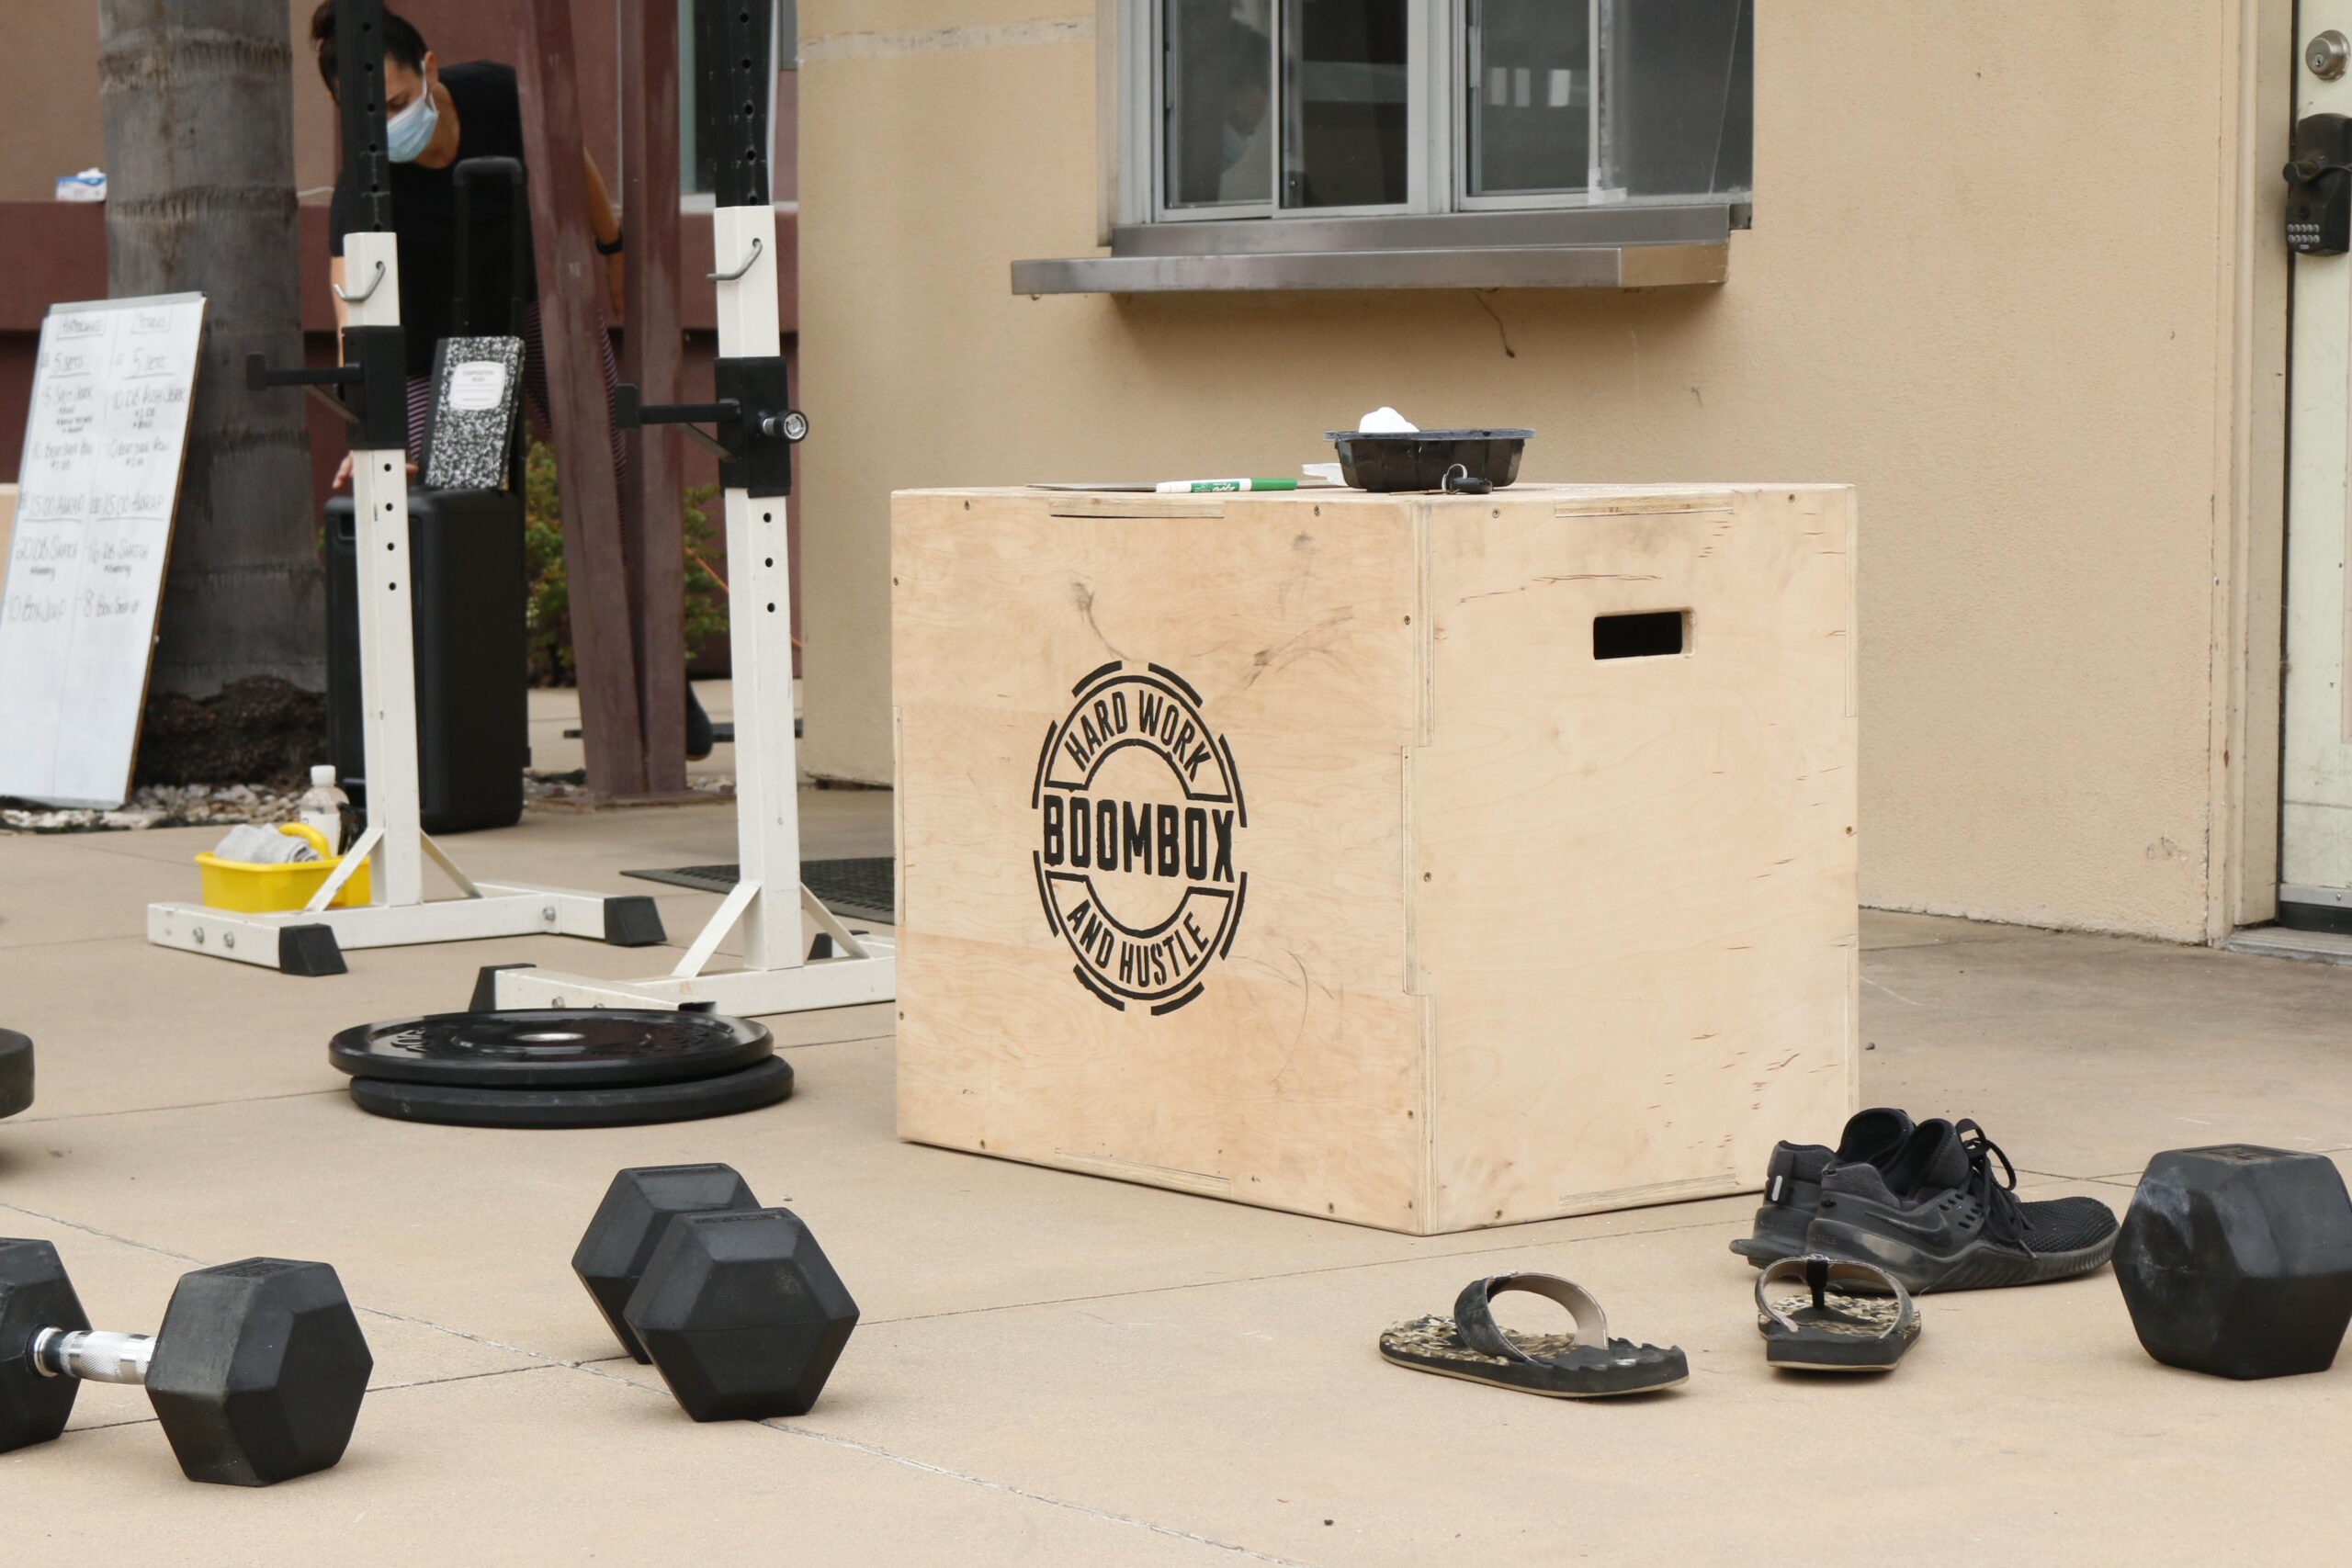 Gym Boombox Crossfit